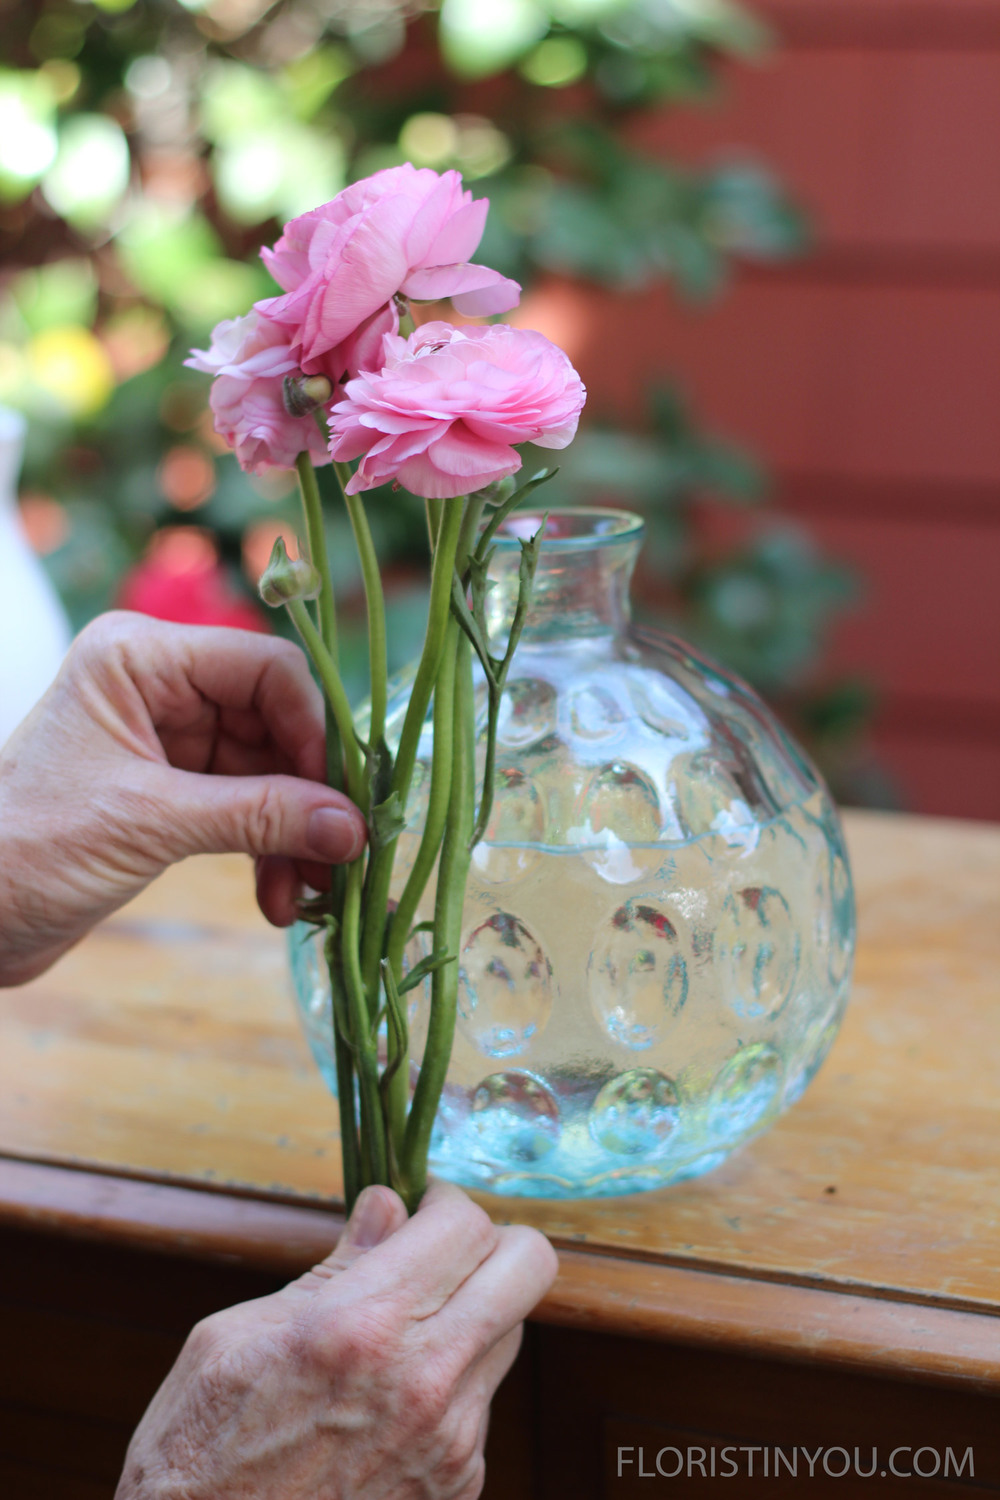 Use the vase as a reference for how short to cut the stems.